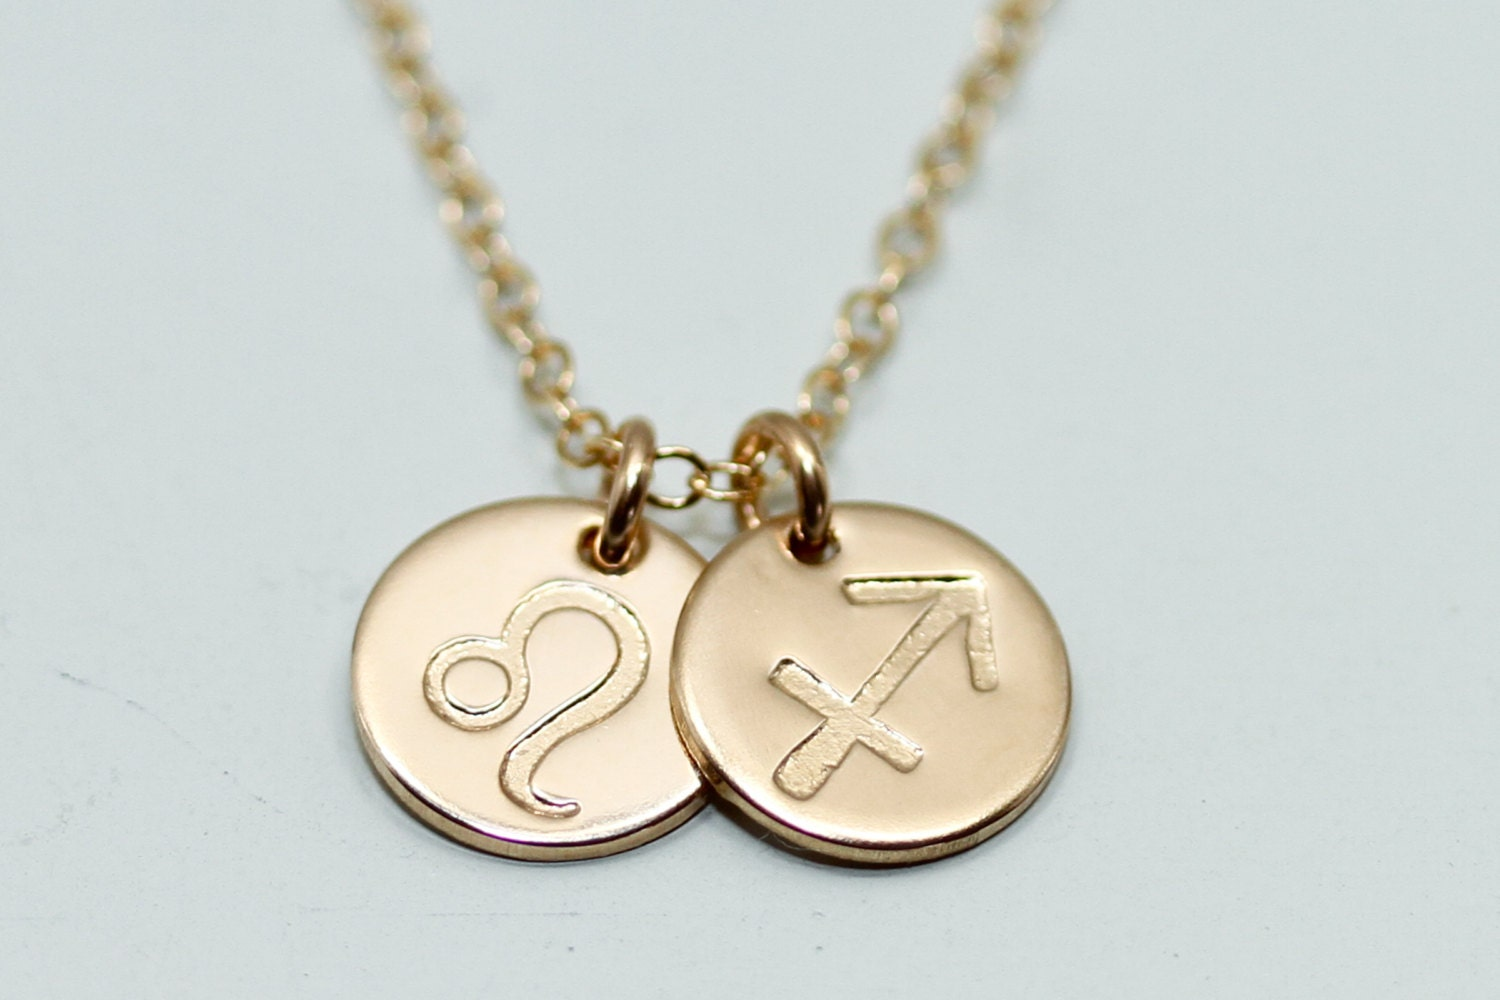 zodiac necklace zodiac jewelry dainty gold by seaandcake